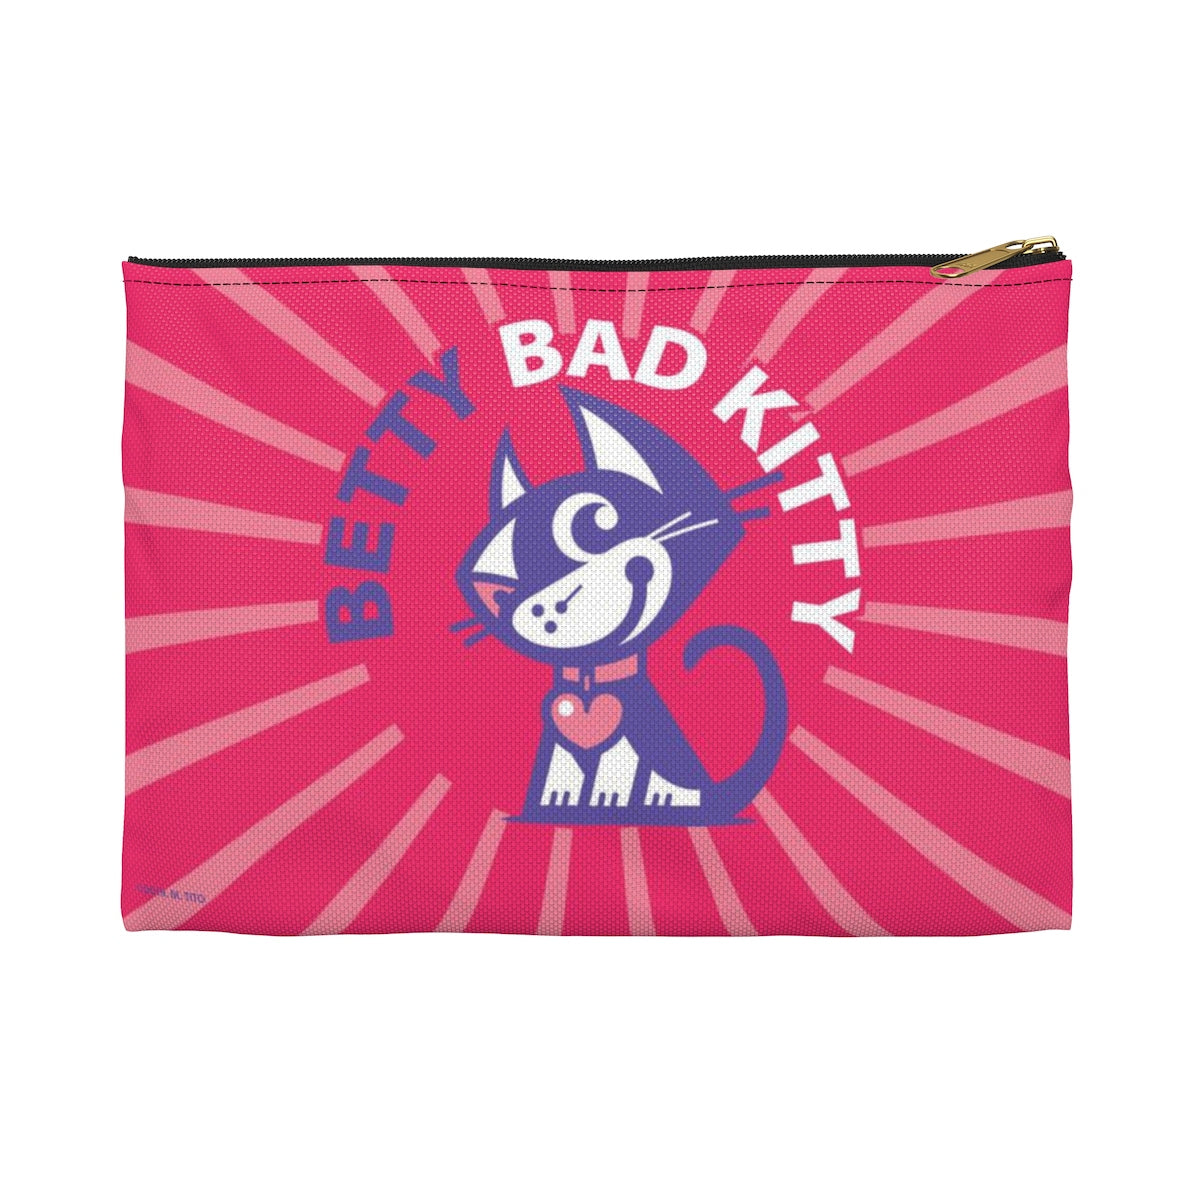 Betty Bad Kitty II . Accessory Pouch